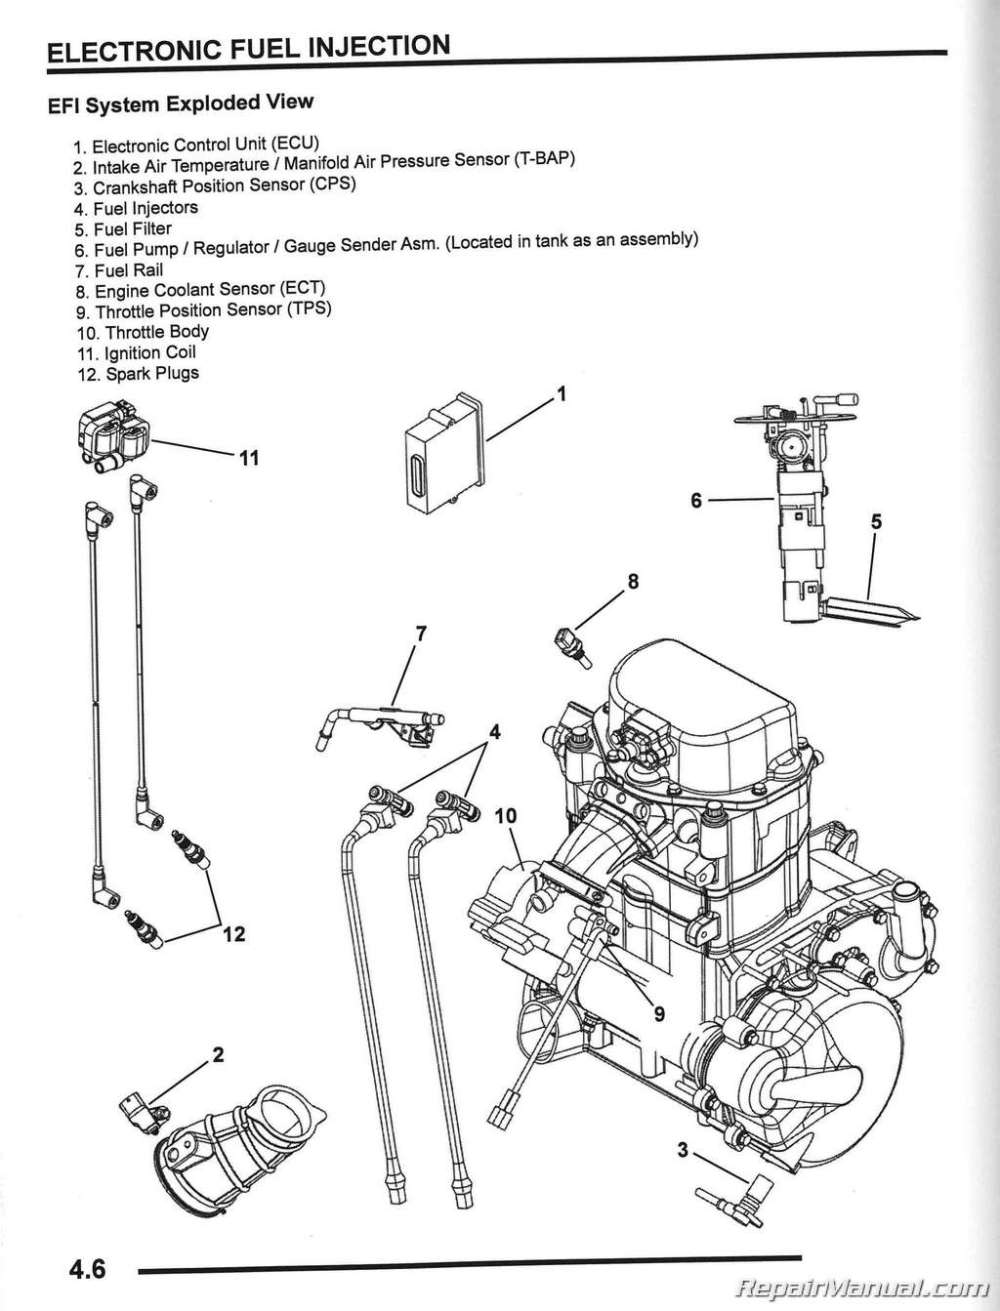 medium resolution of 2008 polaris ranger rzr 800 side by side service manual king quad 700 wiring diagram rzr 800 4wd wiring diagram